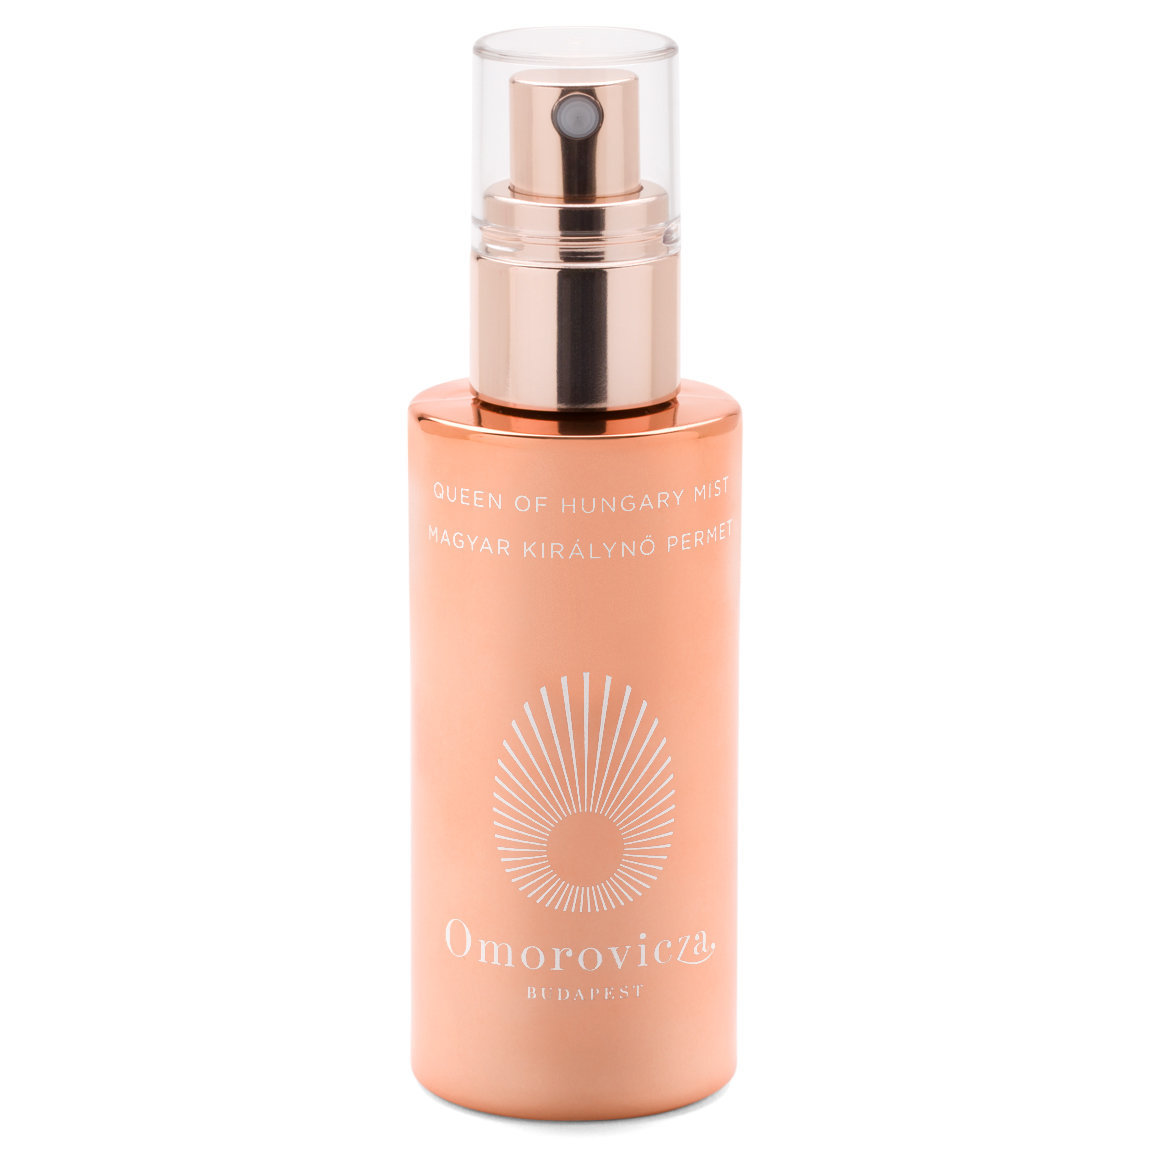 Omorovicza Queen of Hungary Mist 50 ml Rose Gold Edition product smear.